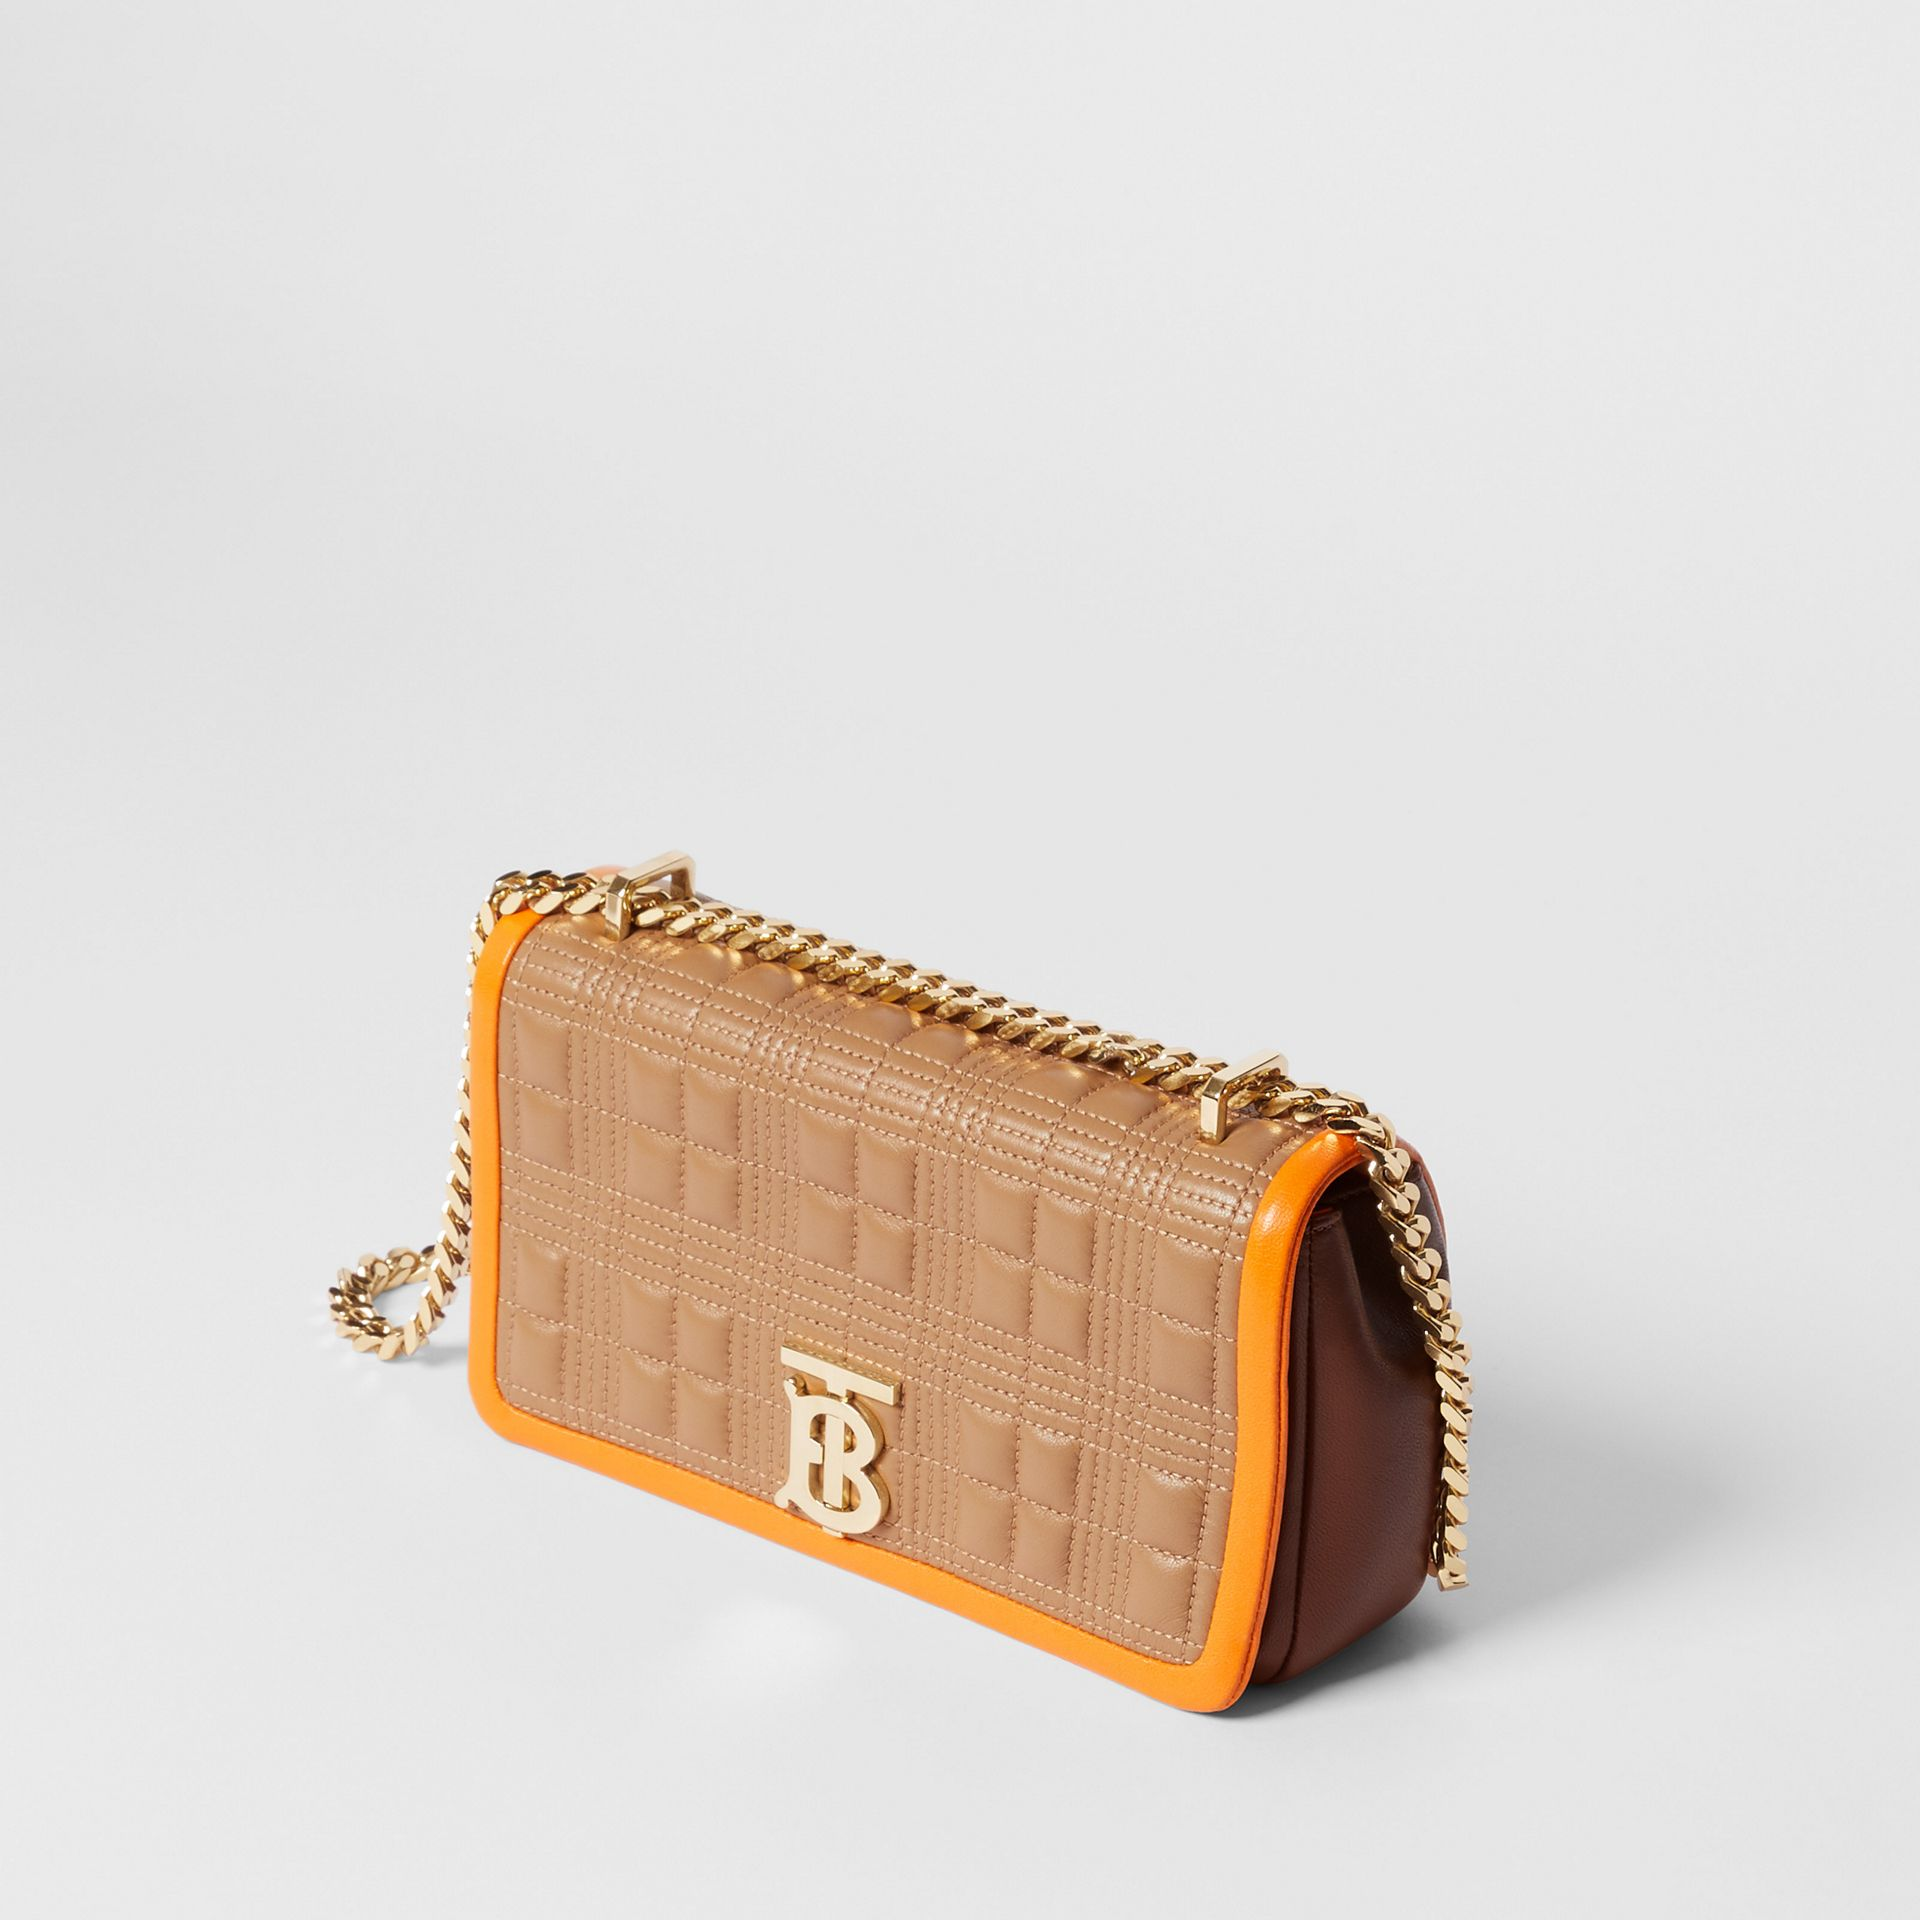 Small Quilted Tri-tone Lambskin Lola Bag in Camel/bright Orange - Women | Burberry - gallery image 3